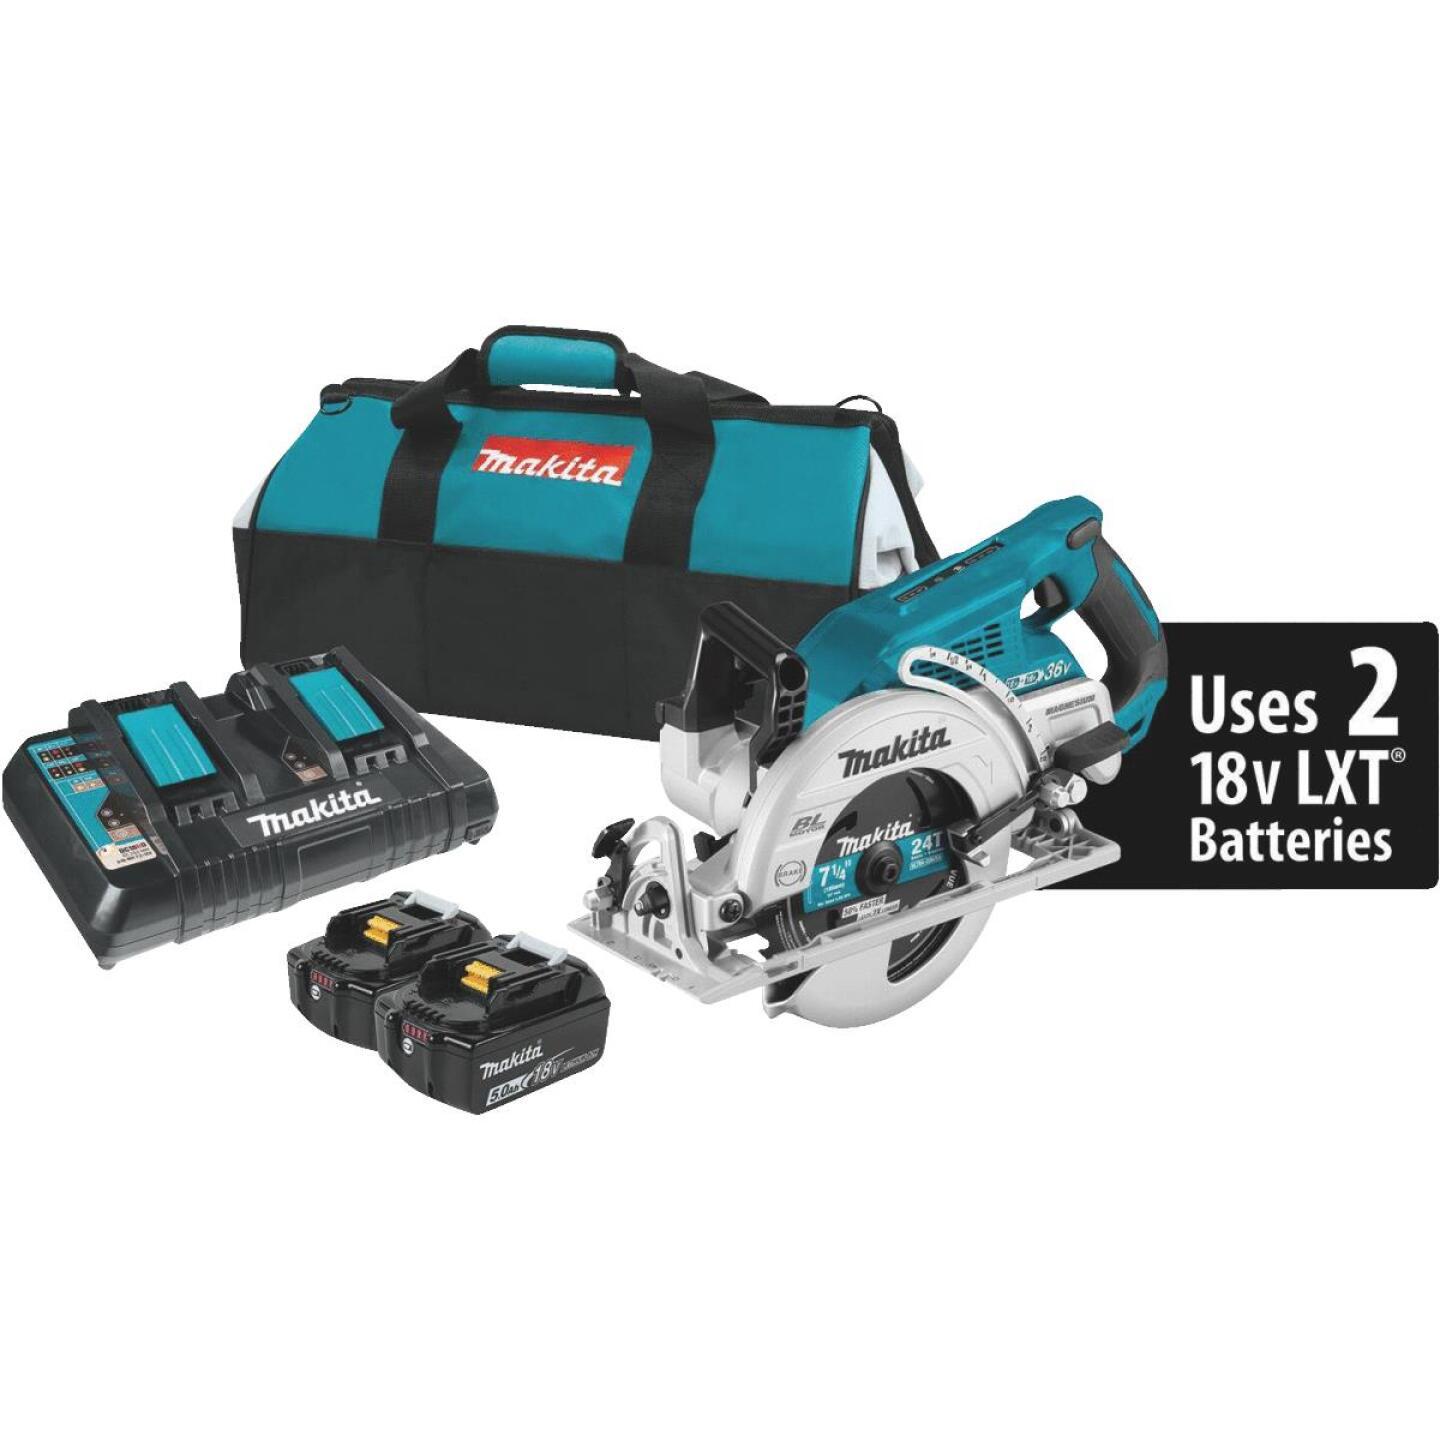 Makita 18 Volt LXT X2 Lithium-Ion Brushless 7-1/4 In. Rear Handle Cordless Circular Saw Kit Image 1